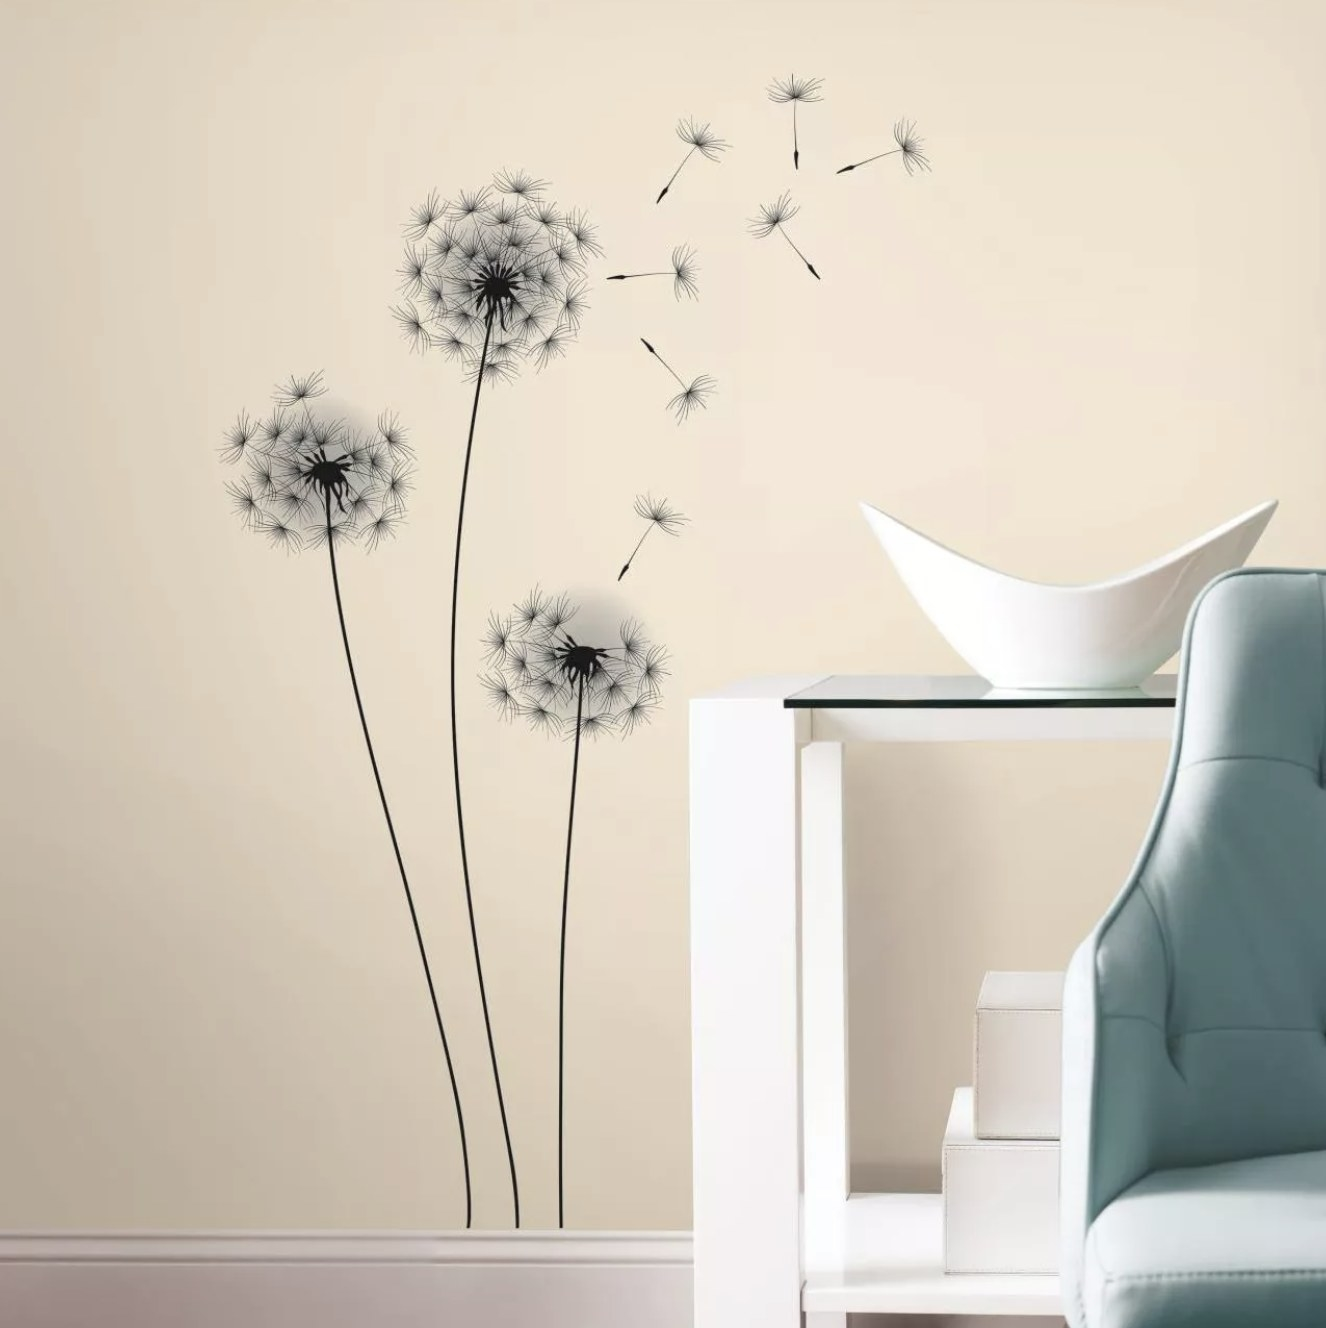 The dandelion decal on a wall